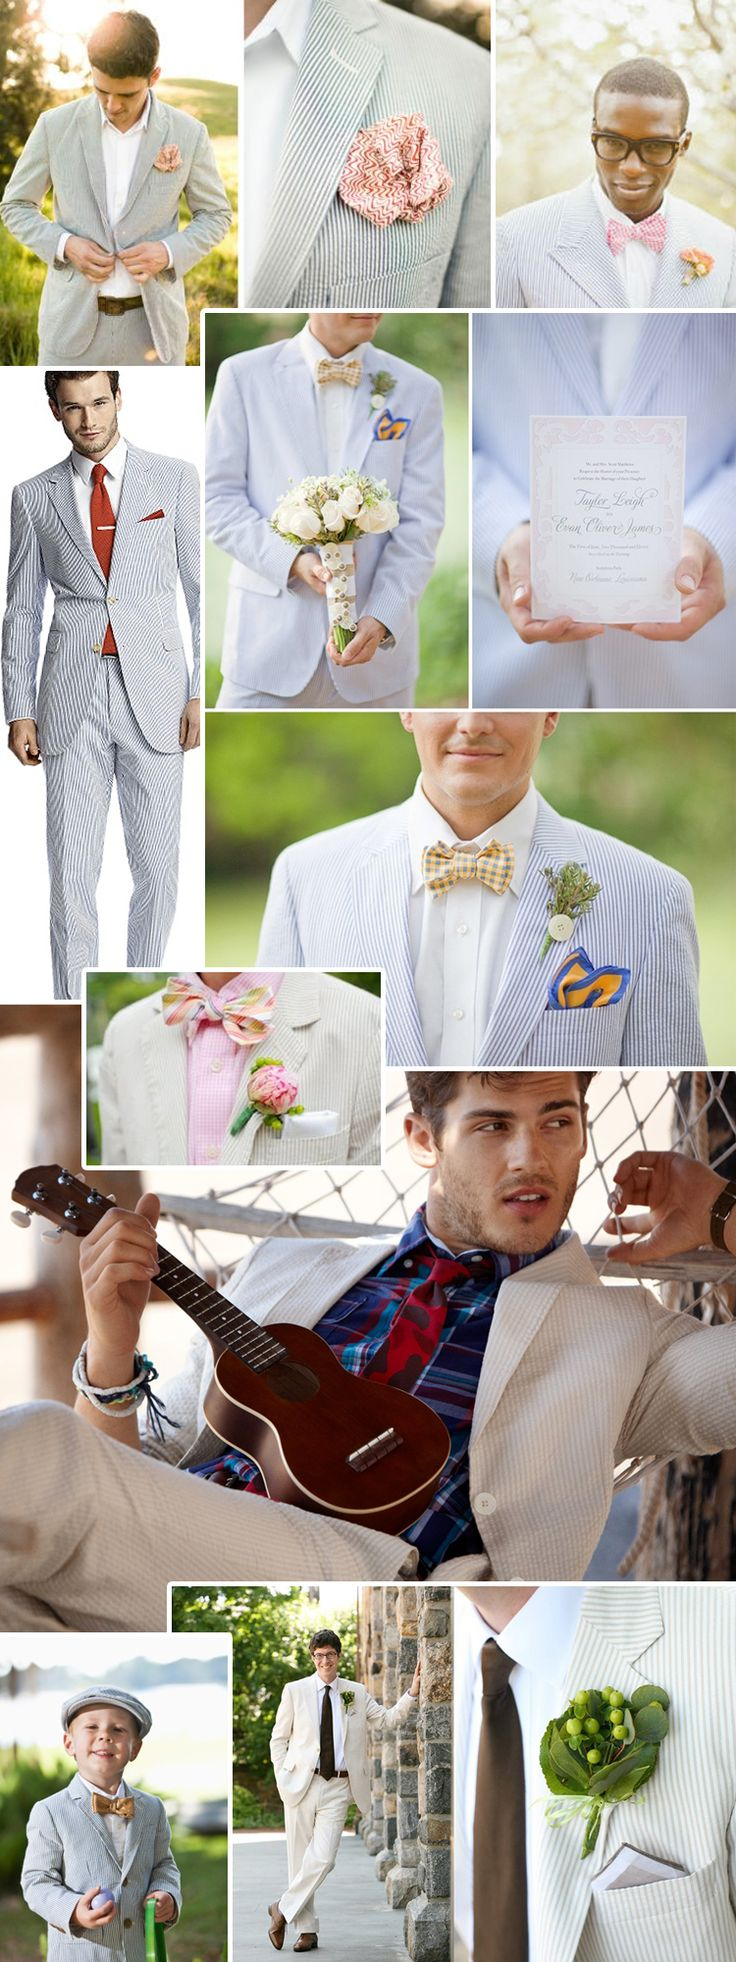 hot hot HOT! Spring Wedding Trend for Men: Seersucker Suits & Pastel Ties